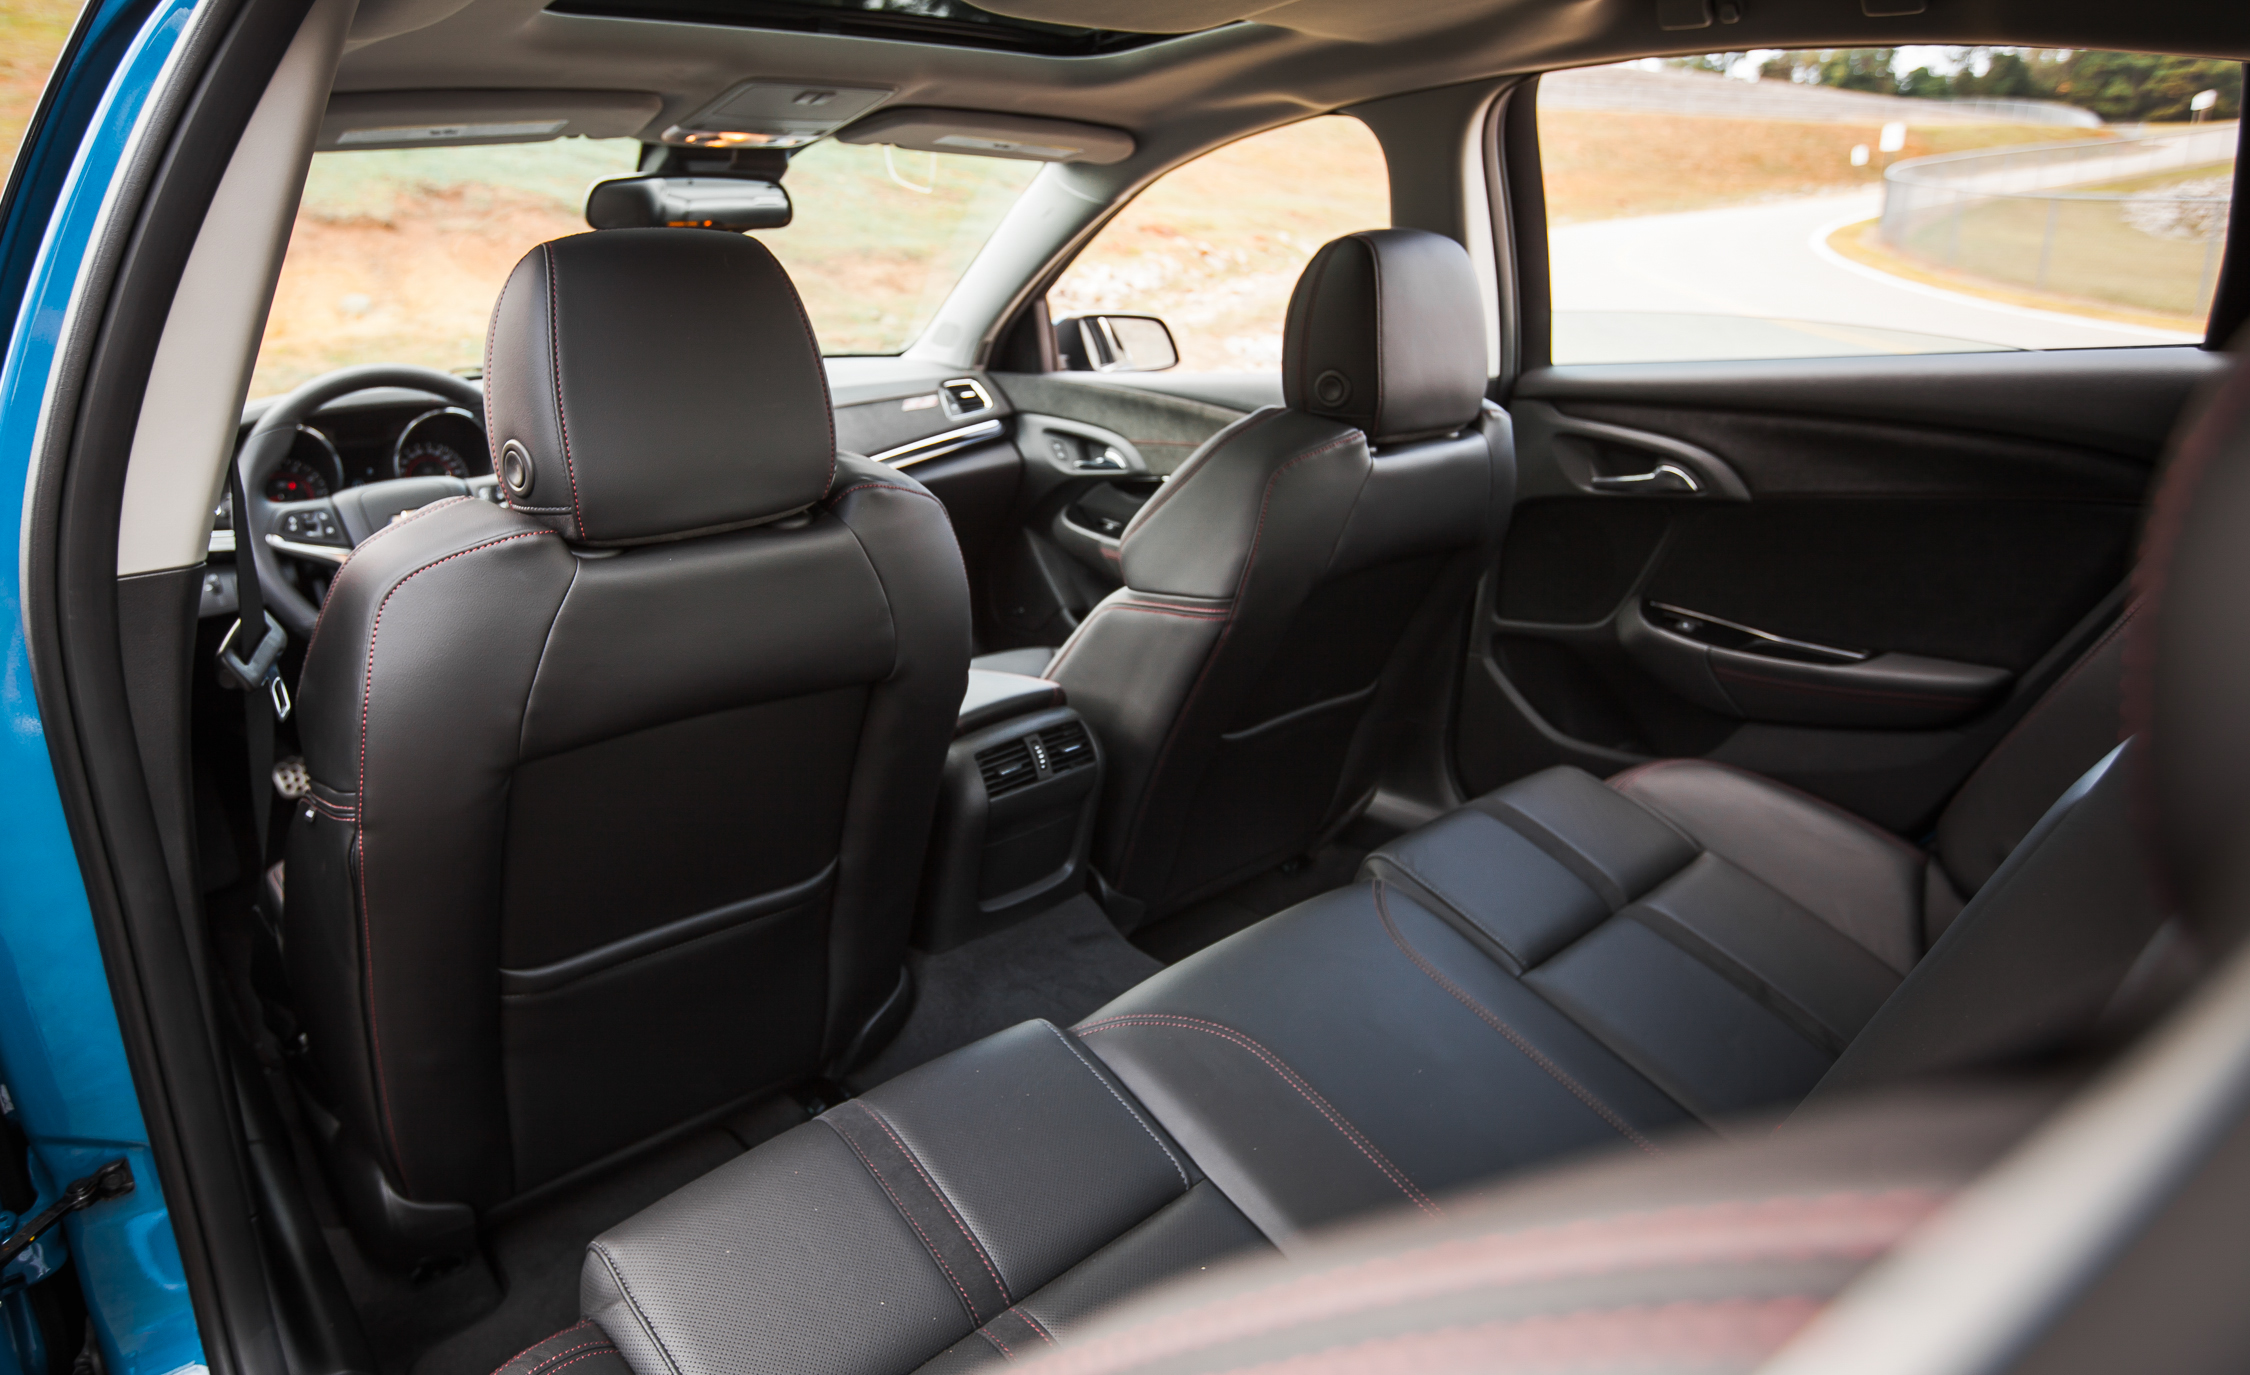 2015 Chevrolet SS Interior Rear Seats Space